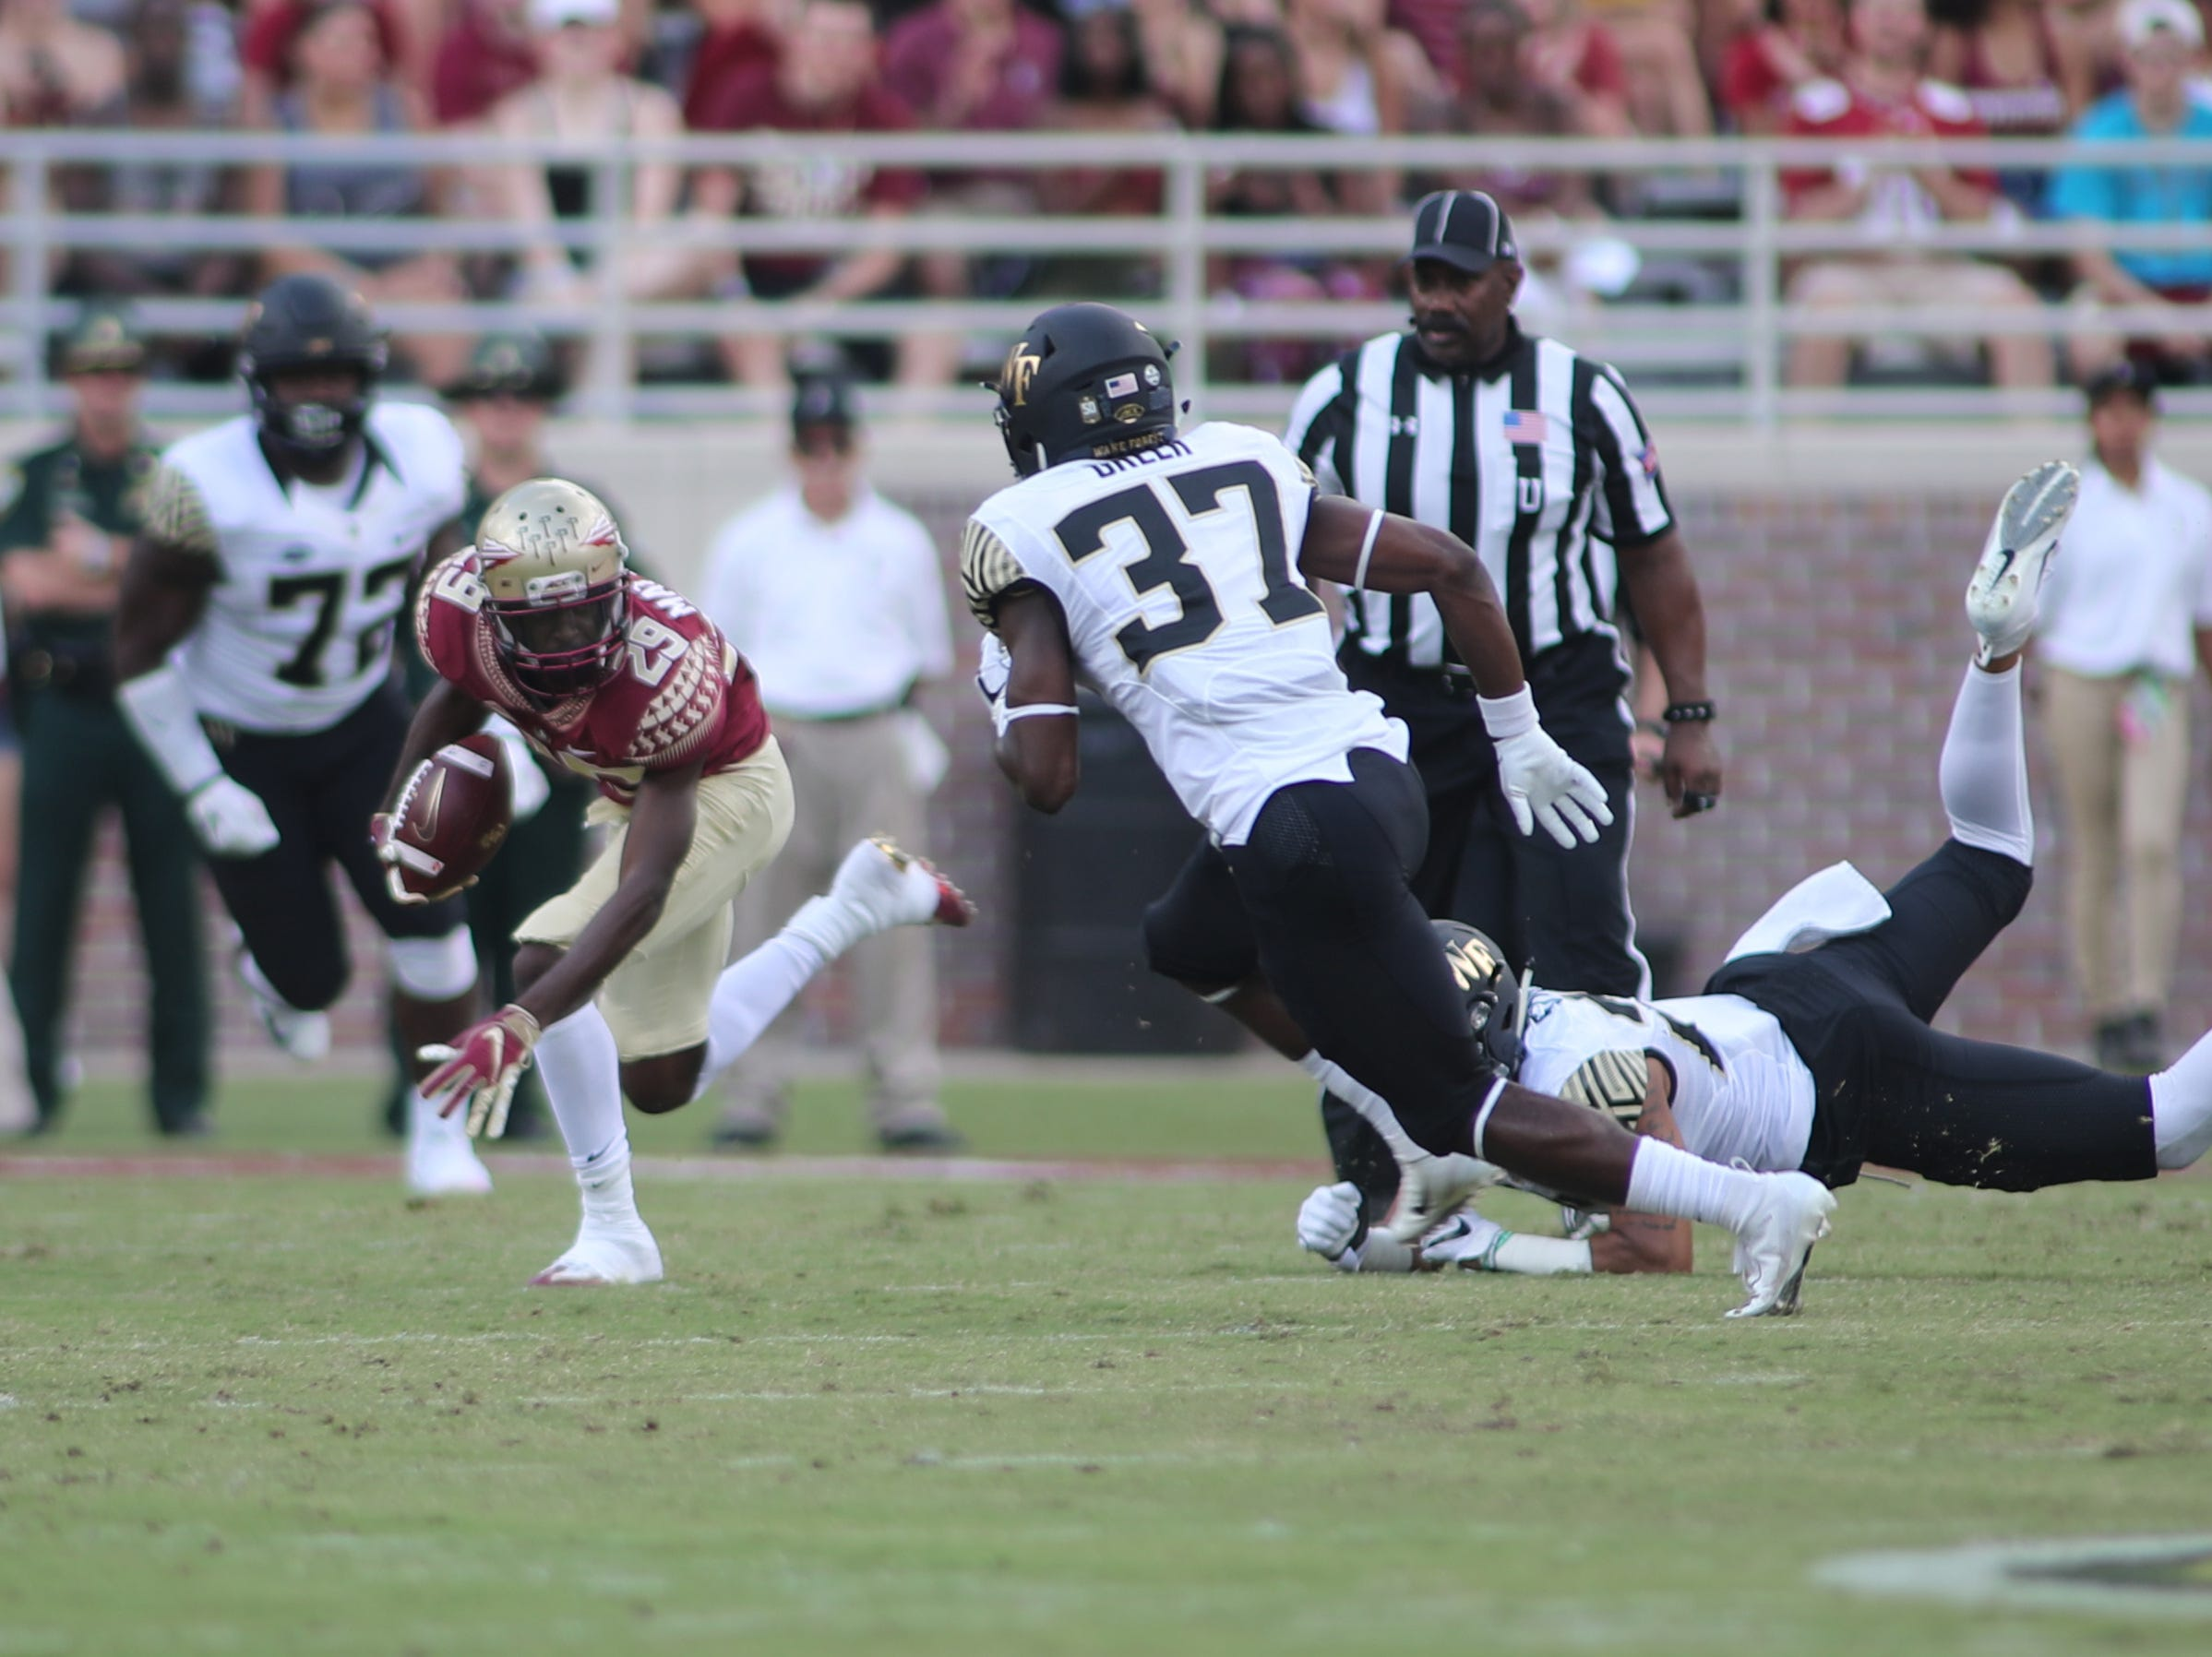 Florida State Seminoles wide receiver D.J. Matthews (29) runs the ball during FSU's homecoming game against Wake Forest at Doak S. Campbell Stadium Saturday, Oct. 20, 2018.